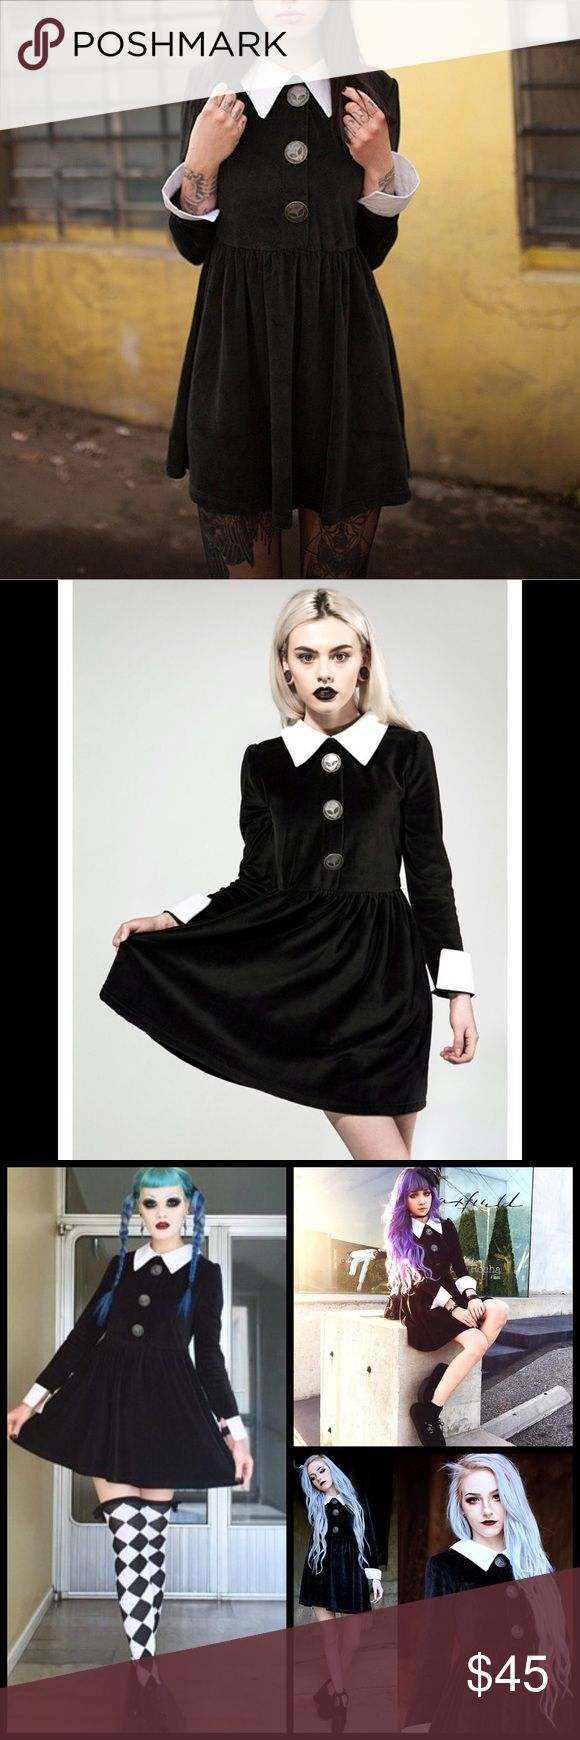 Disturbia Rosemary Wednesday Babydoll Collar Dress Disturbia Rosemary Wednesday Addams Style Velour Dress is perfectly soft, warm and strange. Never fit in with this velvety dress featuring soft and slinky velour construction, flowy skirt, long sleeves, contrast Peter Pan style collar and sleeve cuffs. The dress is finished gorgeously with three giant alien faux button closures in the front. A zip in the back allows for easy access. Brand new with tags, still in package. #goth #90s #grunge…